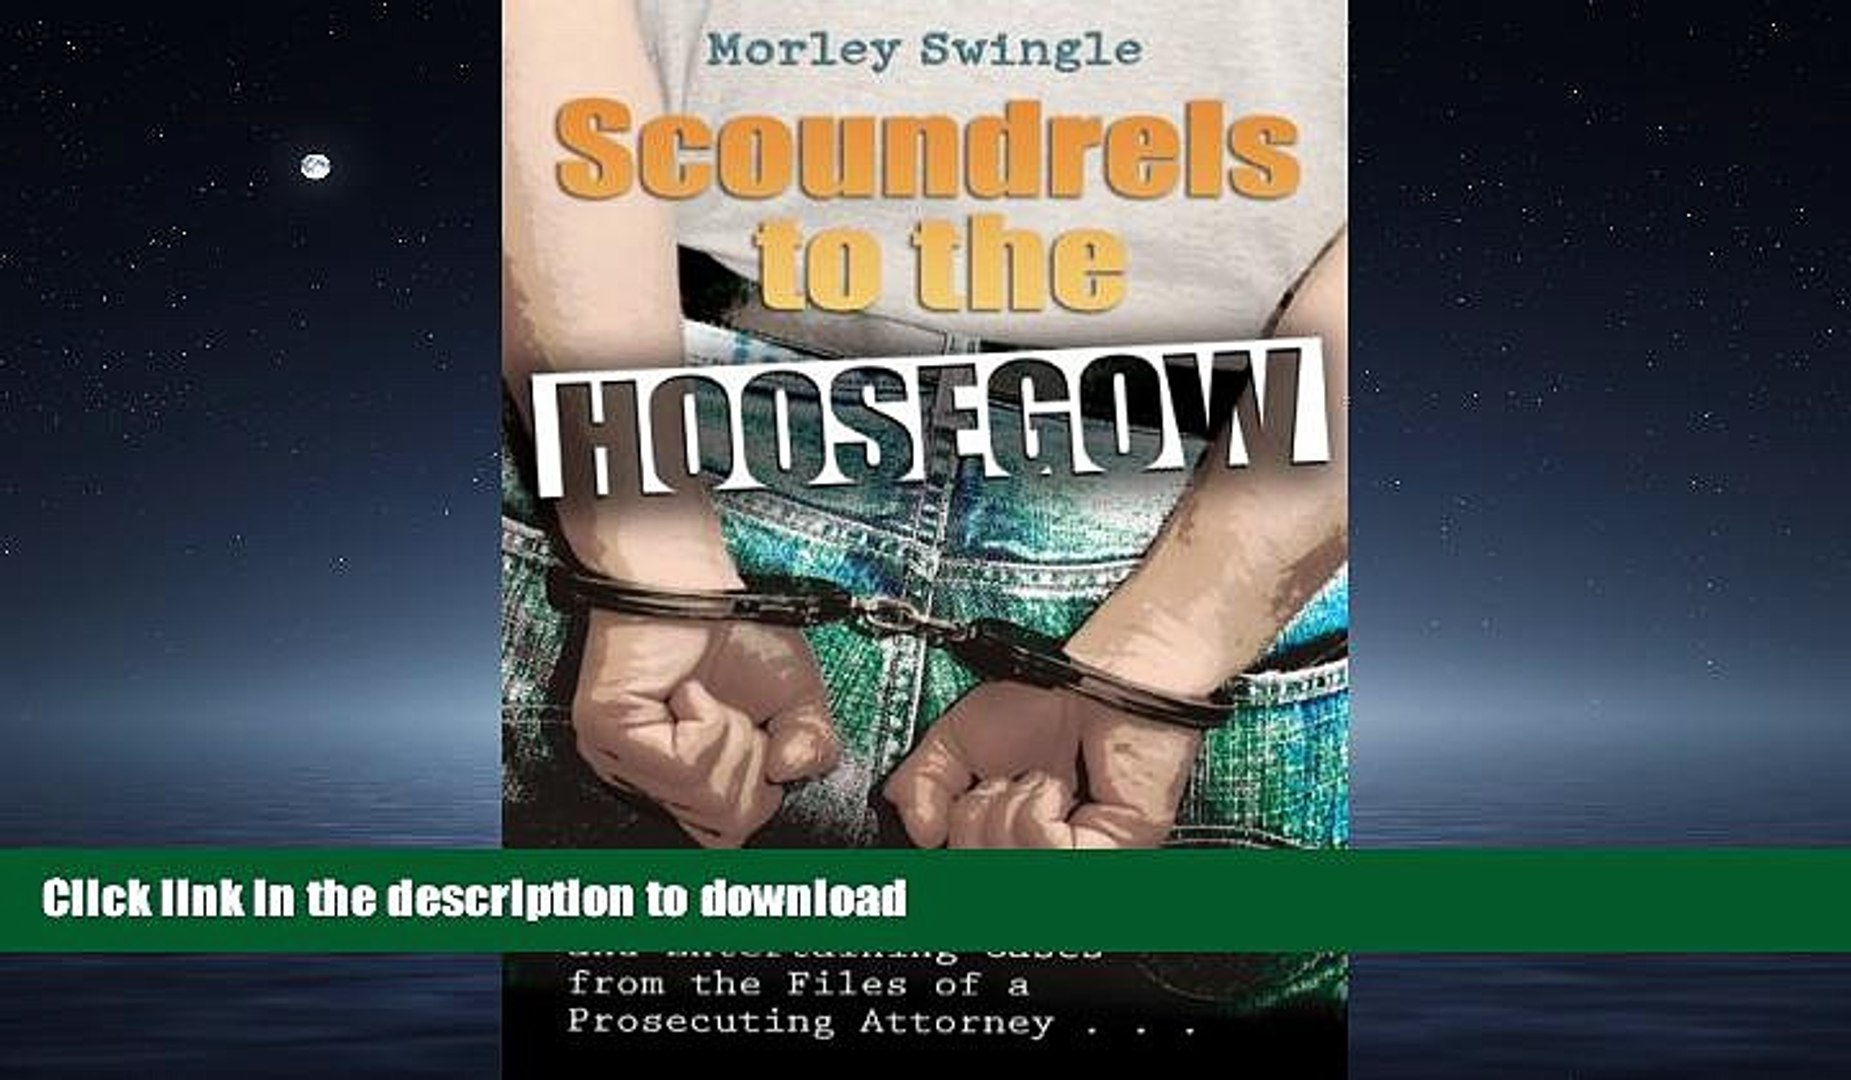 READ THE NEW BOOK Scoundrels to the Hoosegow: Perry Mason Moments and Entertaining Cases from the